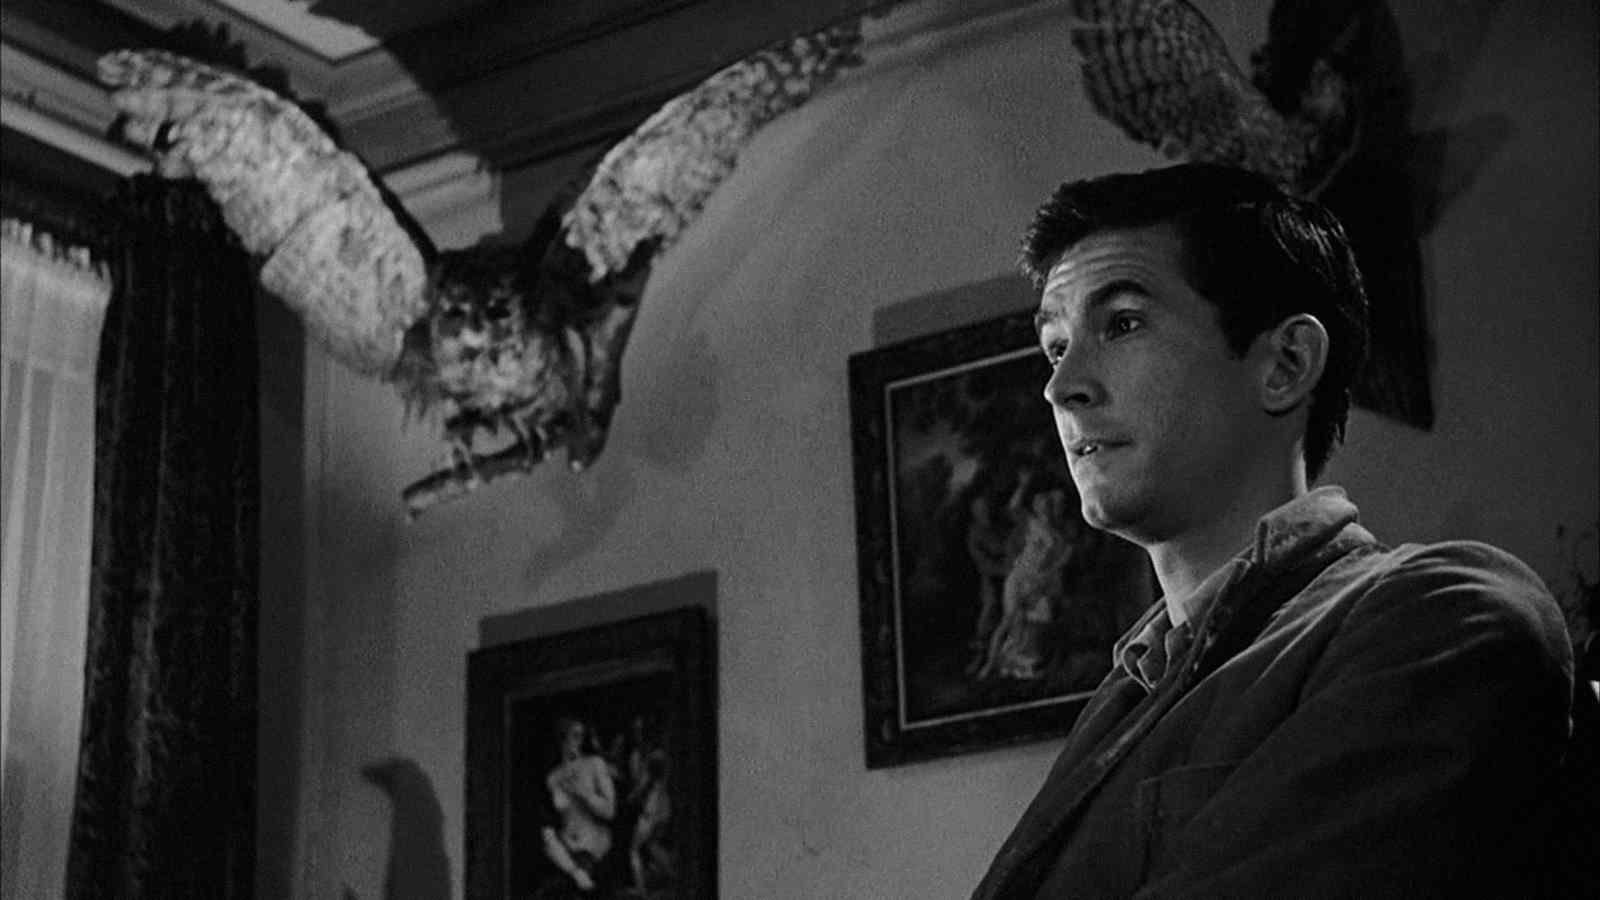 Norman Bates (Anthony Perkins) in Alfred Hitchcock's Psycho.